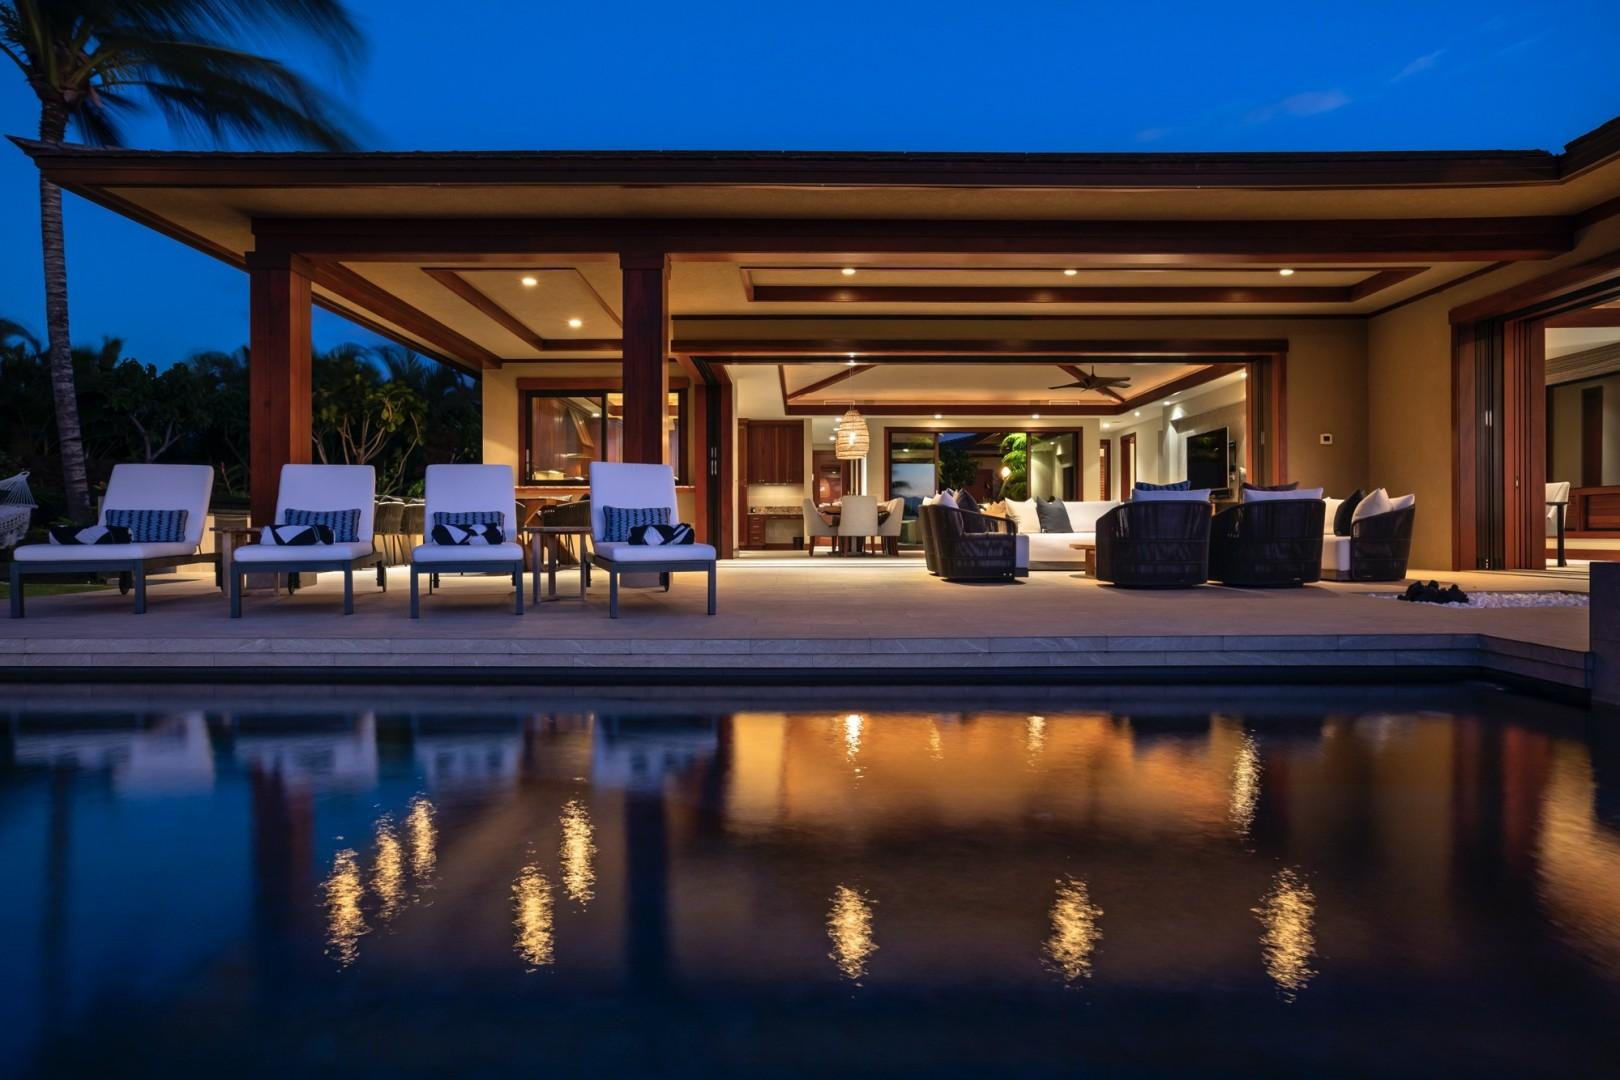 Pool, lanai and home at twilight. A perfect end to a perfect day in paradise.